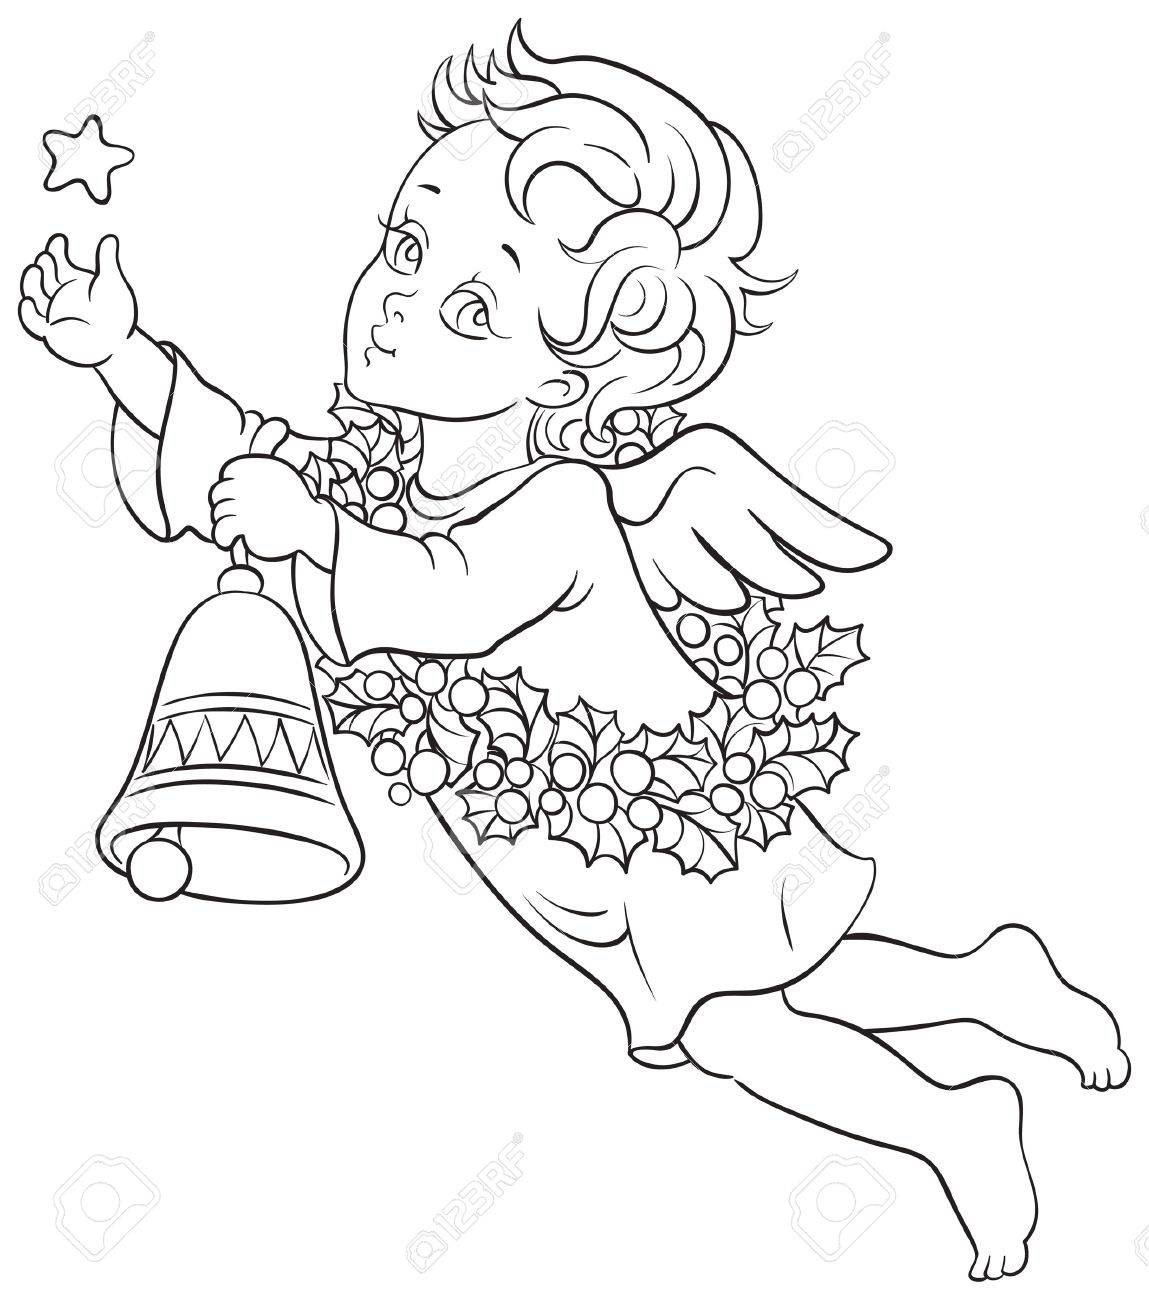 1149x1300 Christmas Angel Drawing. Cute Angel. Free Christmas Candle